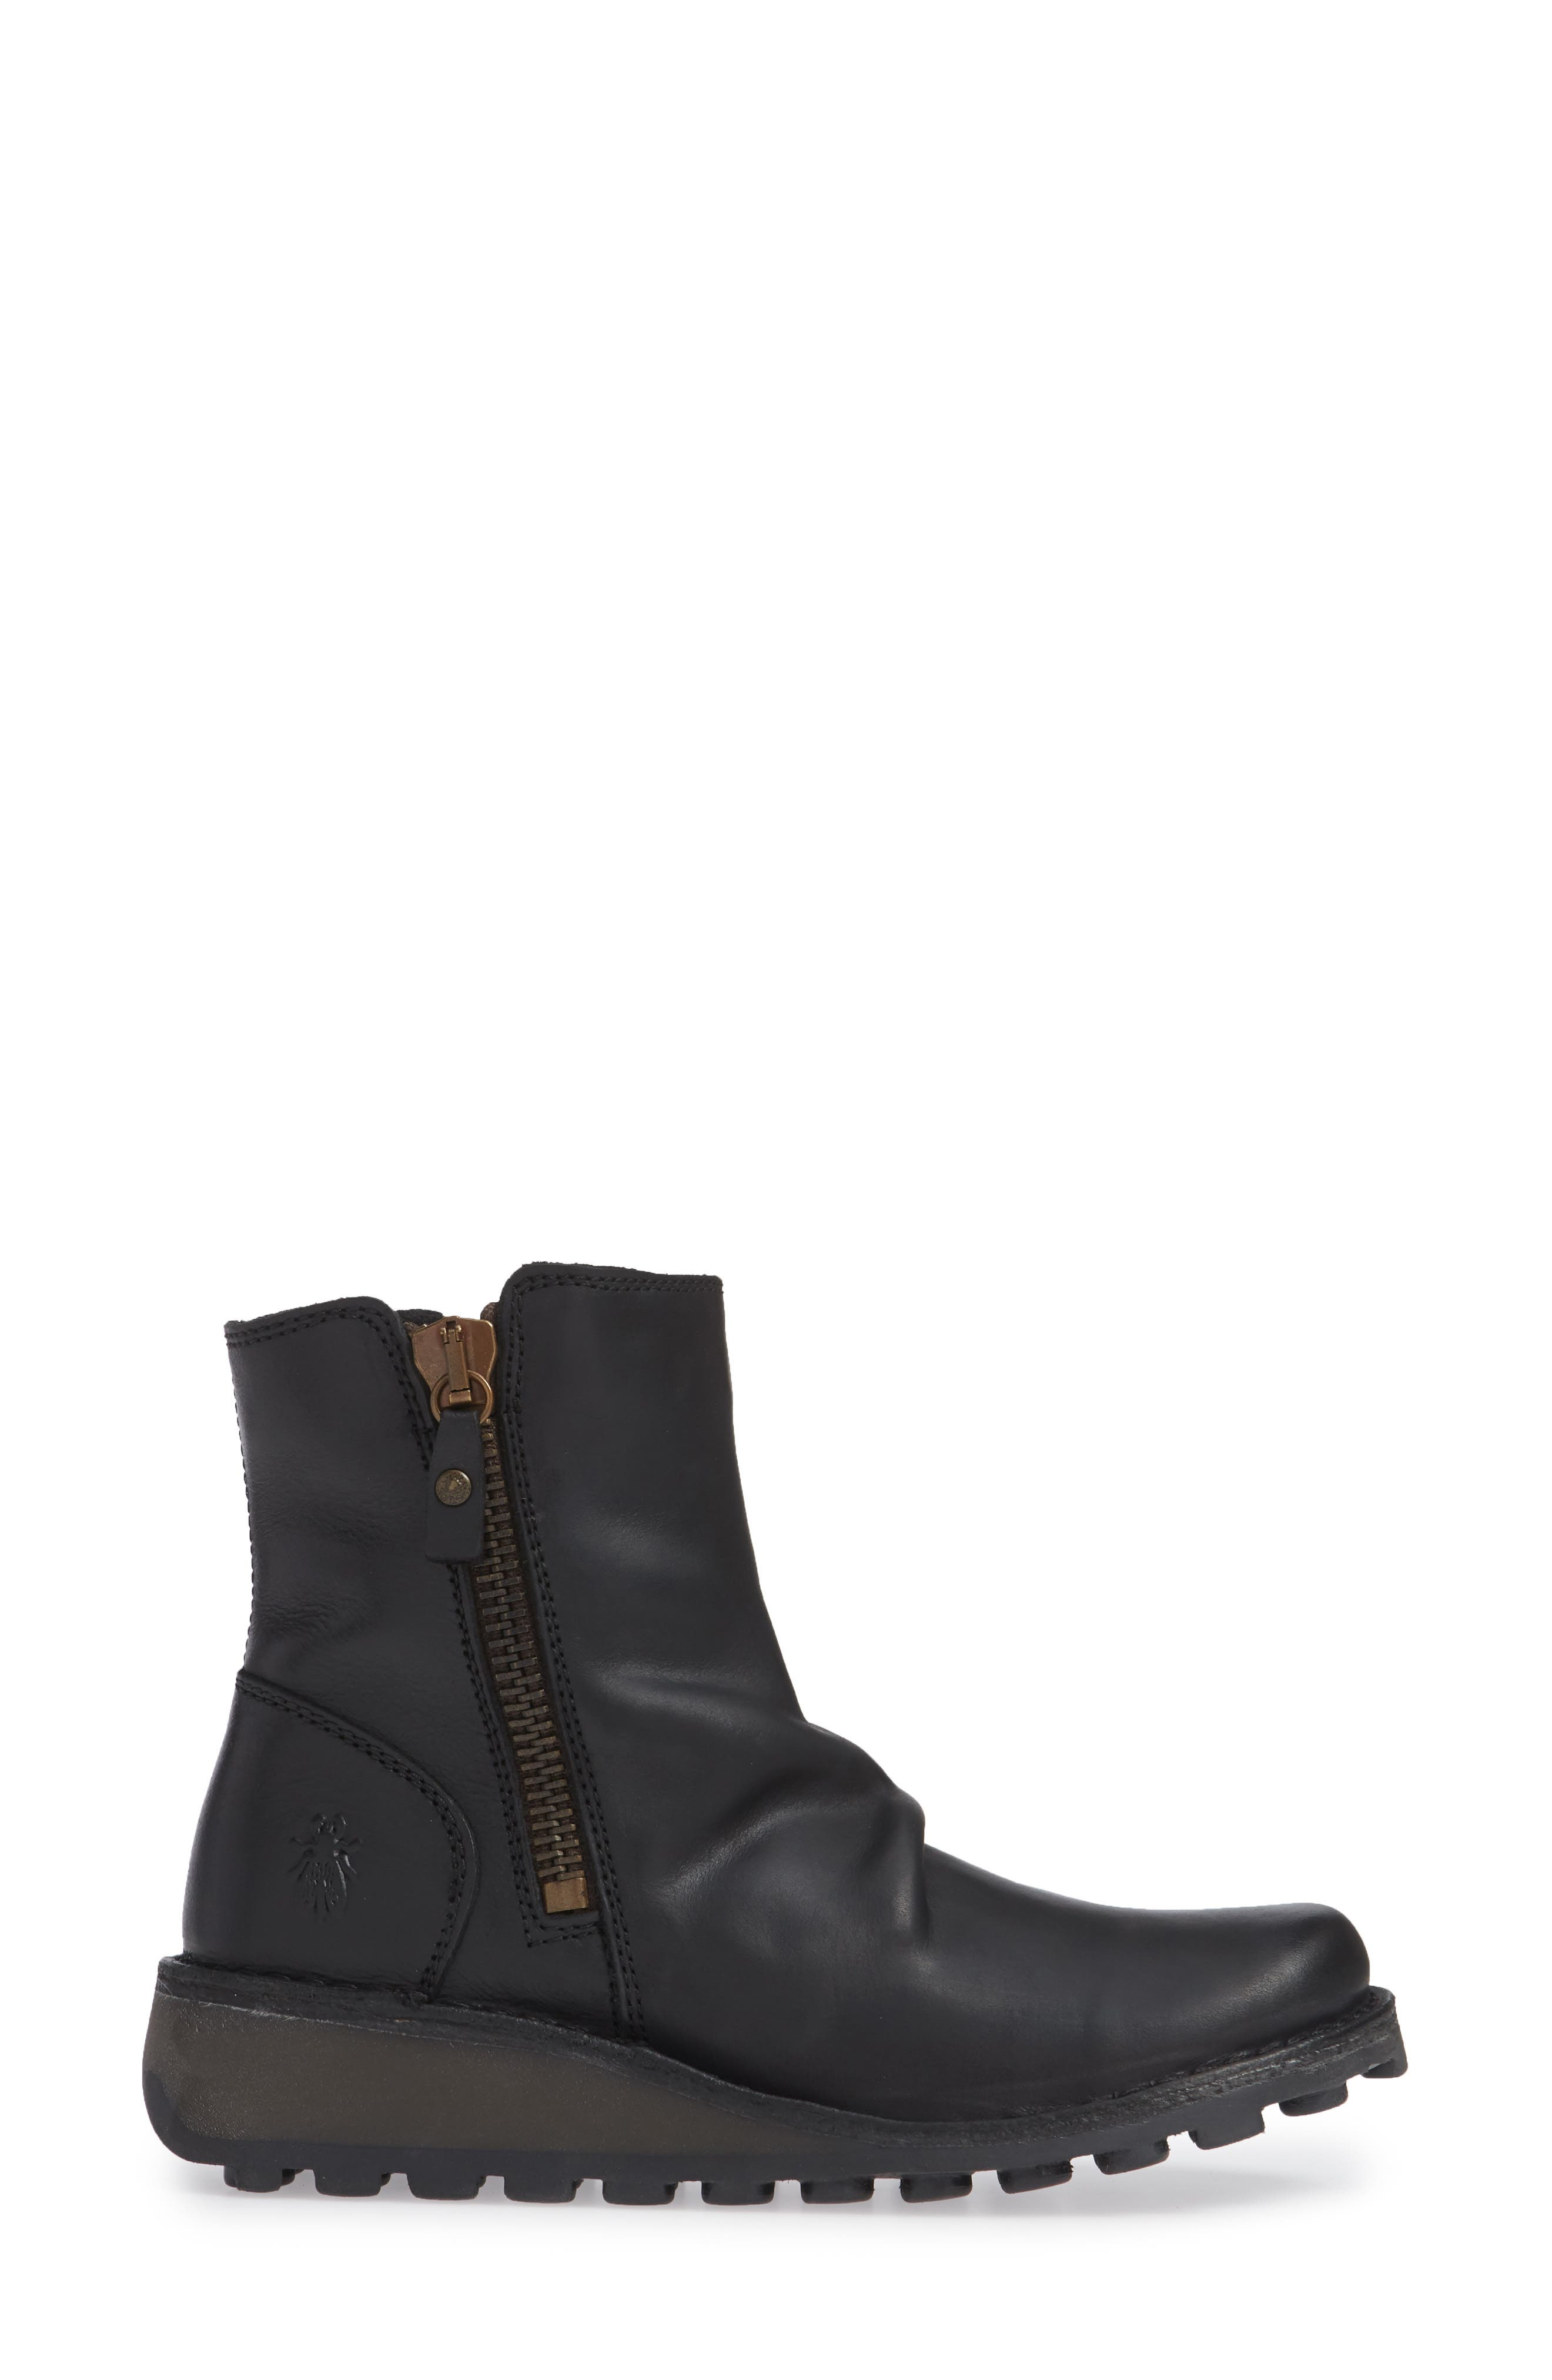 Mong Boot,                             Alternate thumbnail 3, color,                             Black Leather